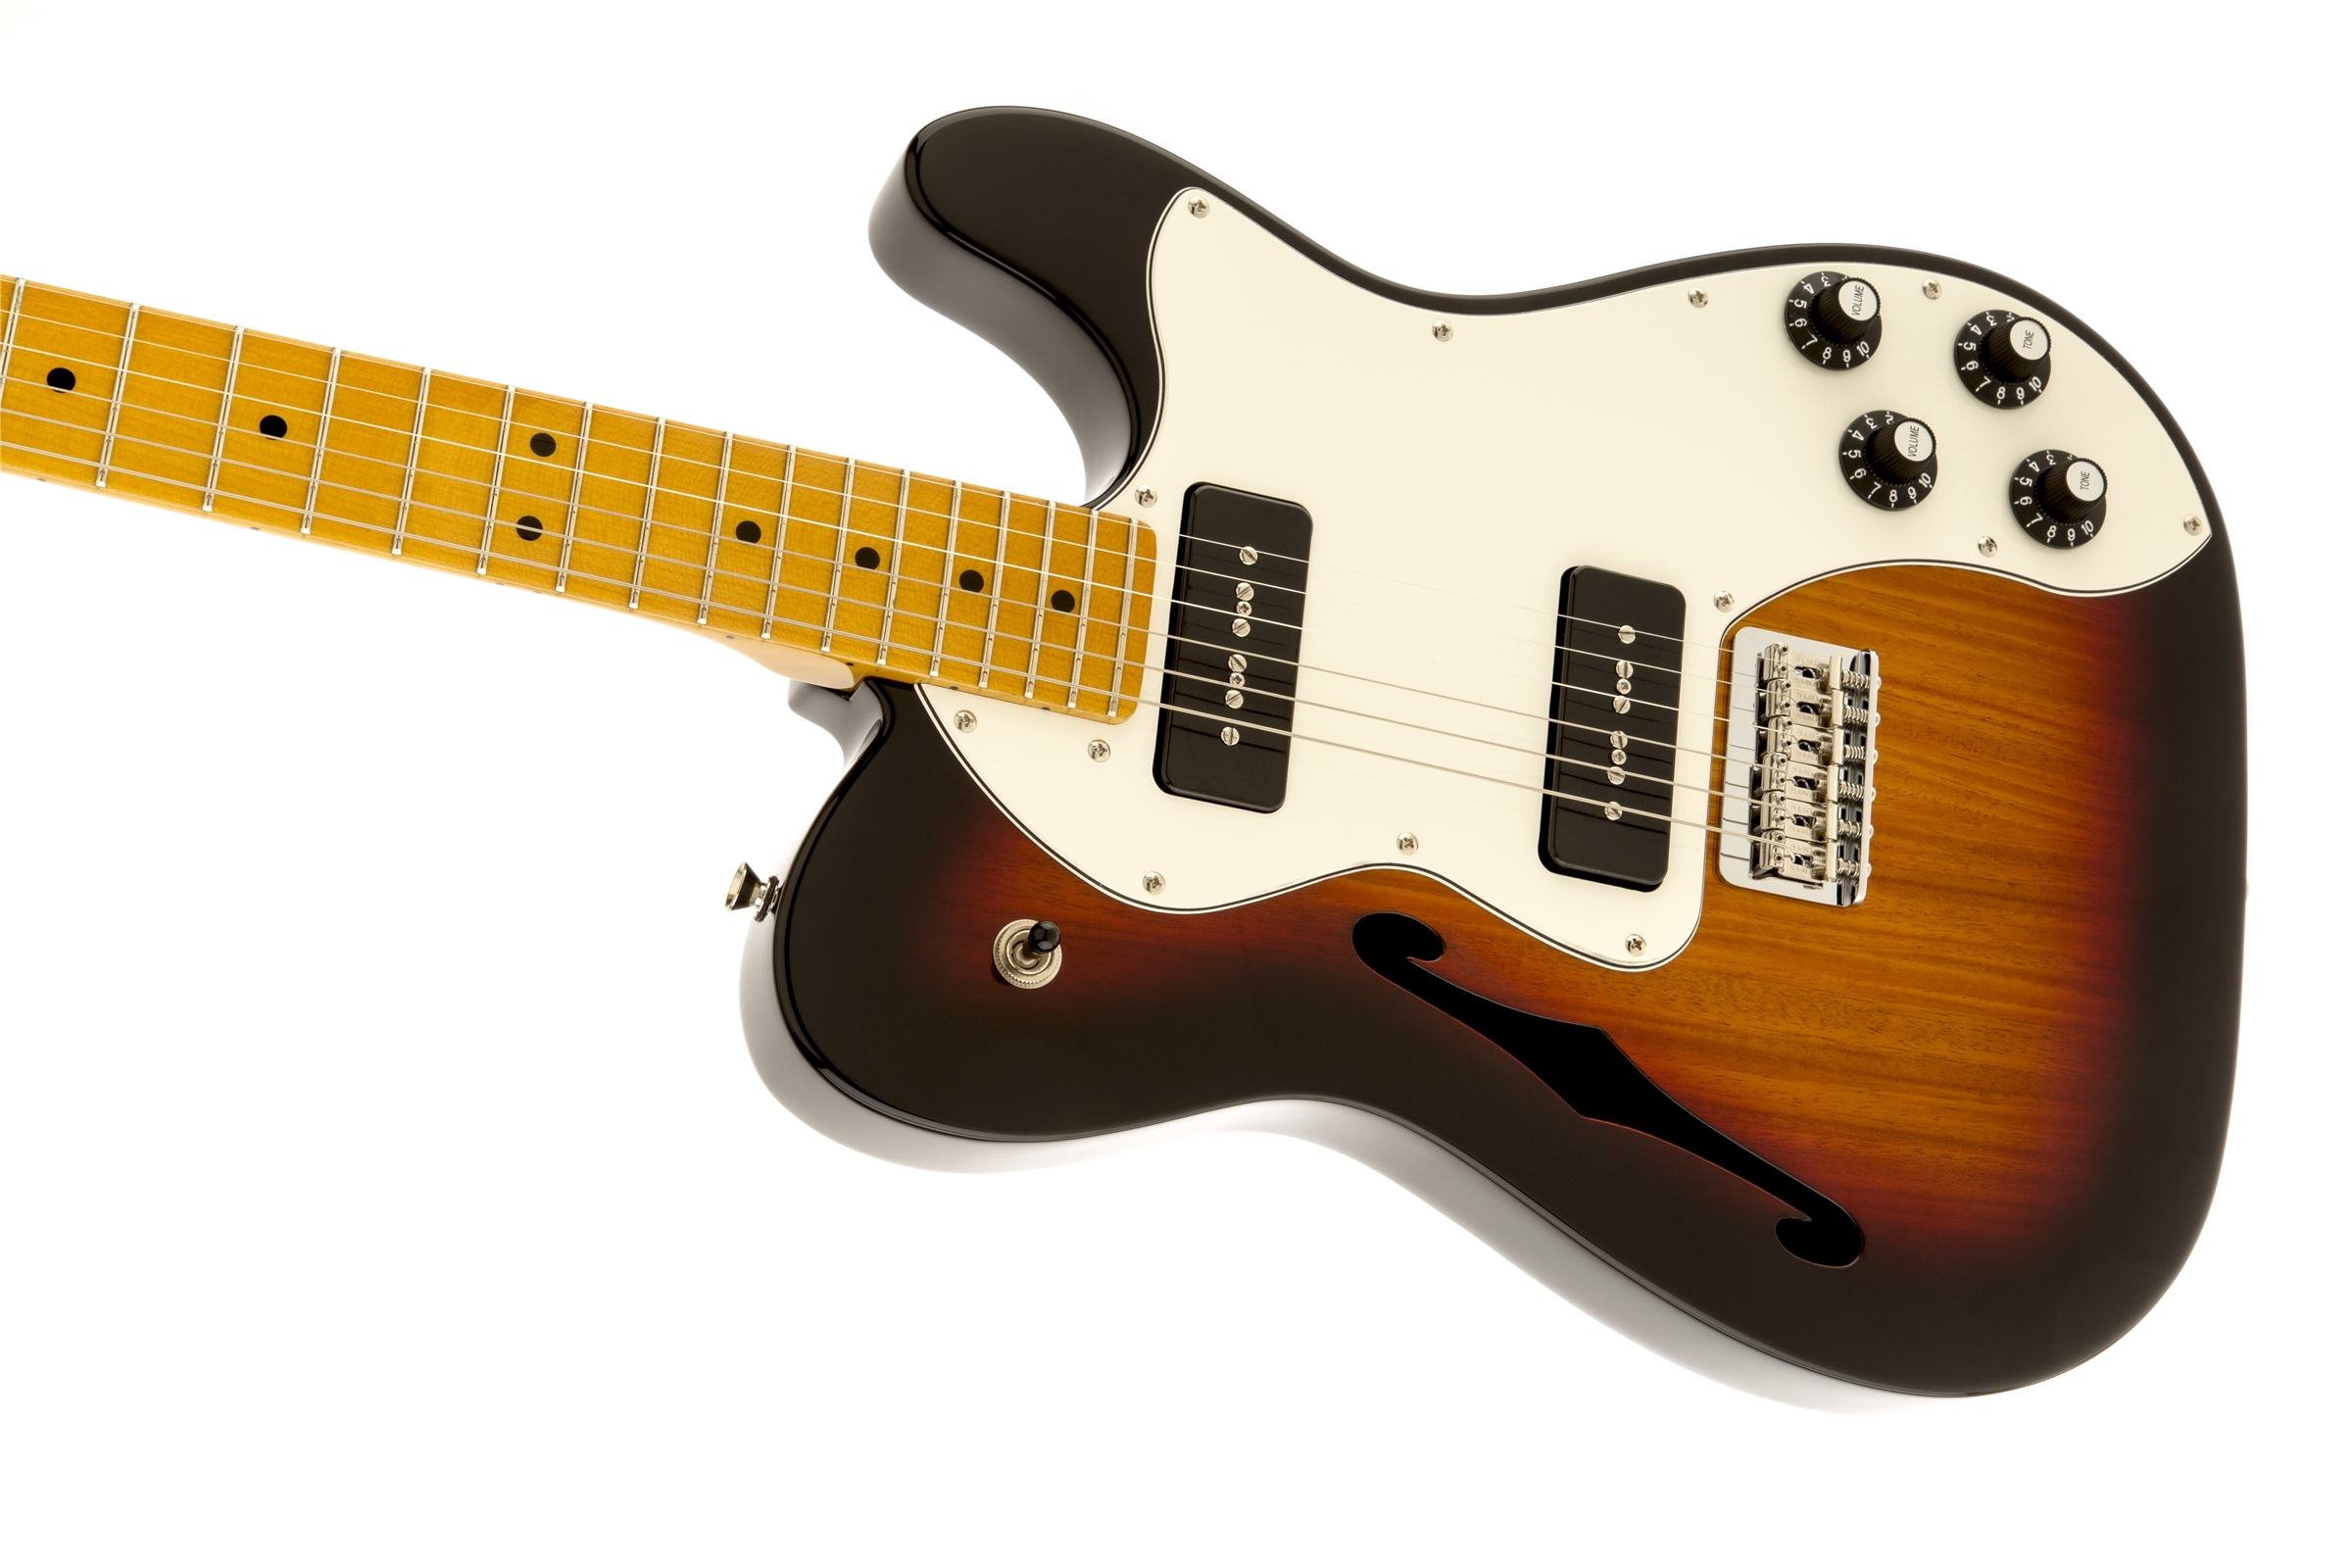 Telecaster Modern Wiring Diagram Library Need A Teisco Type Guitar Forum Diagrams Source Player Thinline Deluxe Fender Electric Guitars Rh Shop